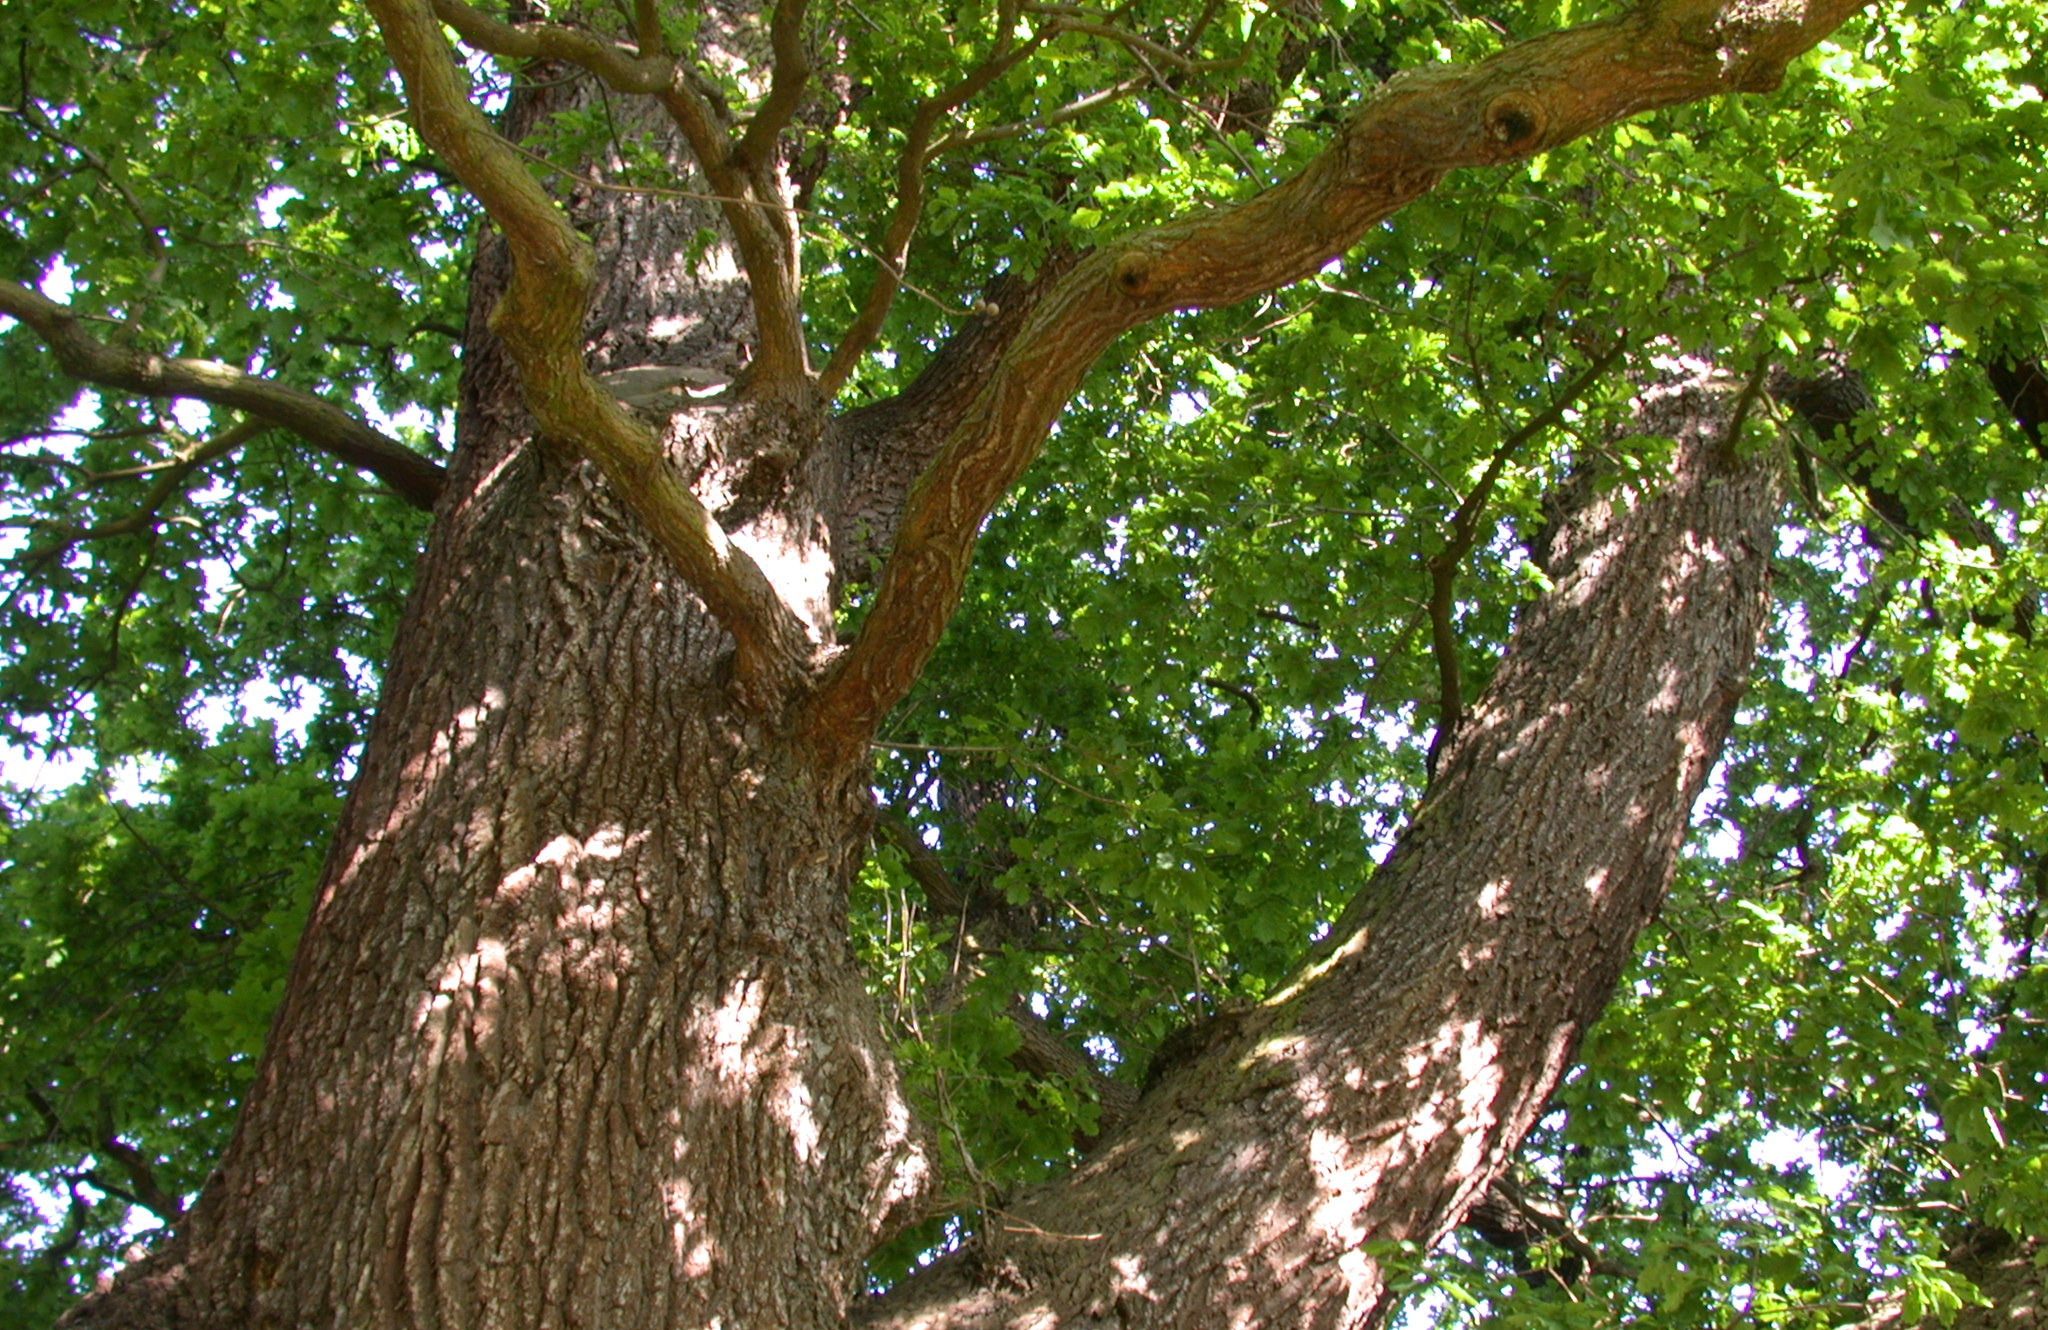 Looking up the trunk of an English oak (Quercus robur)